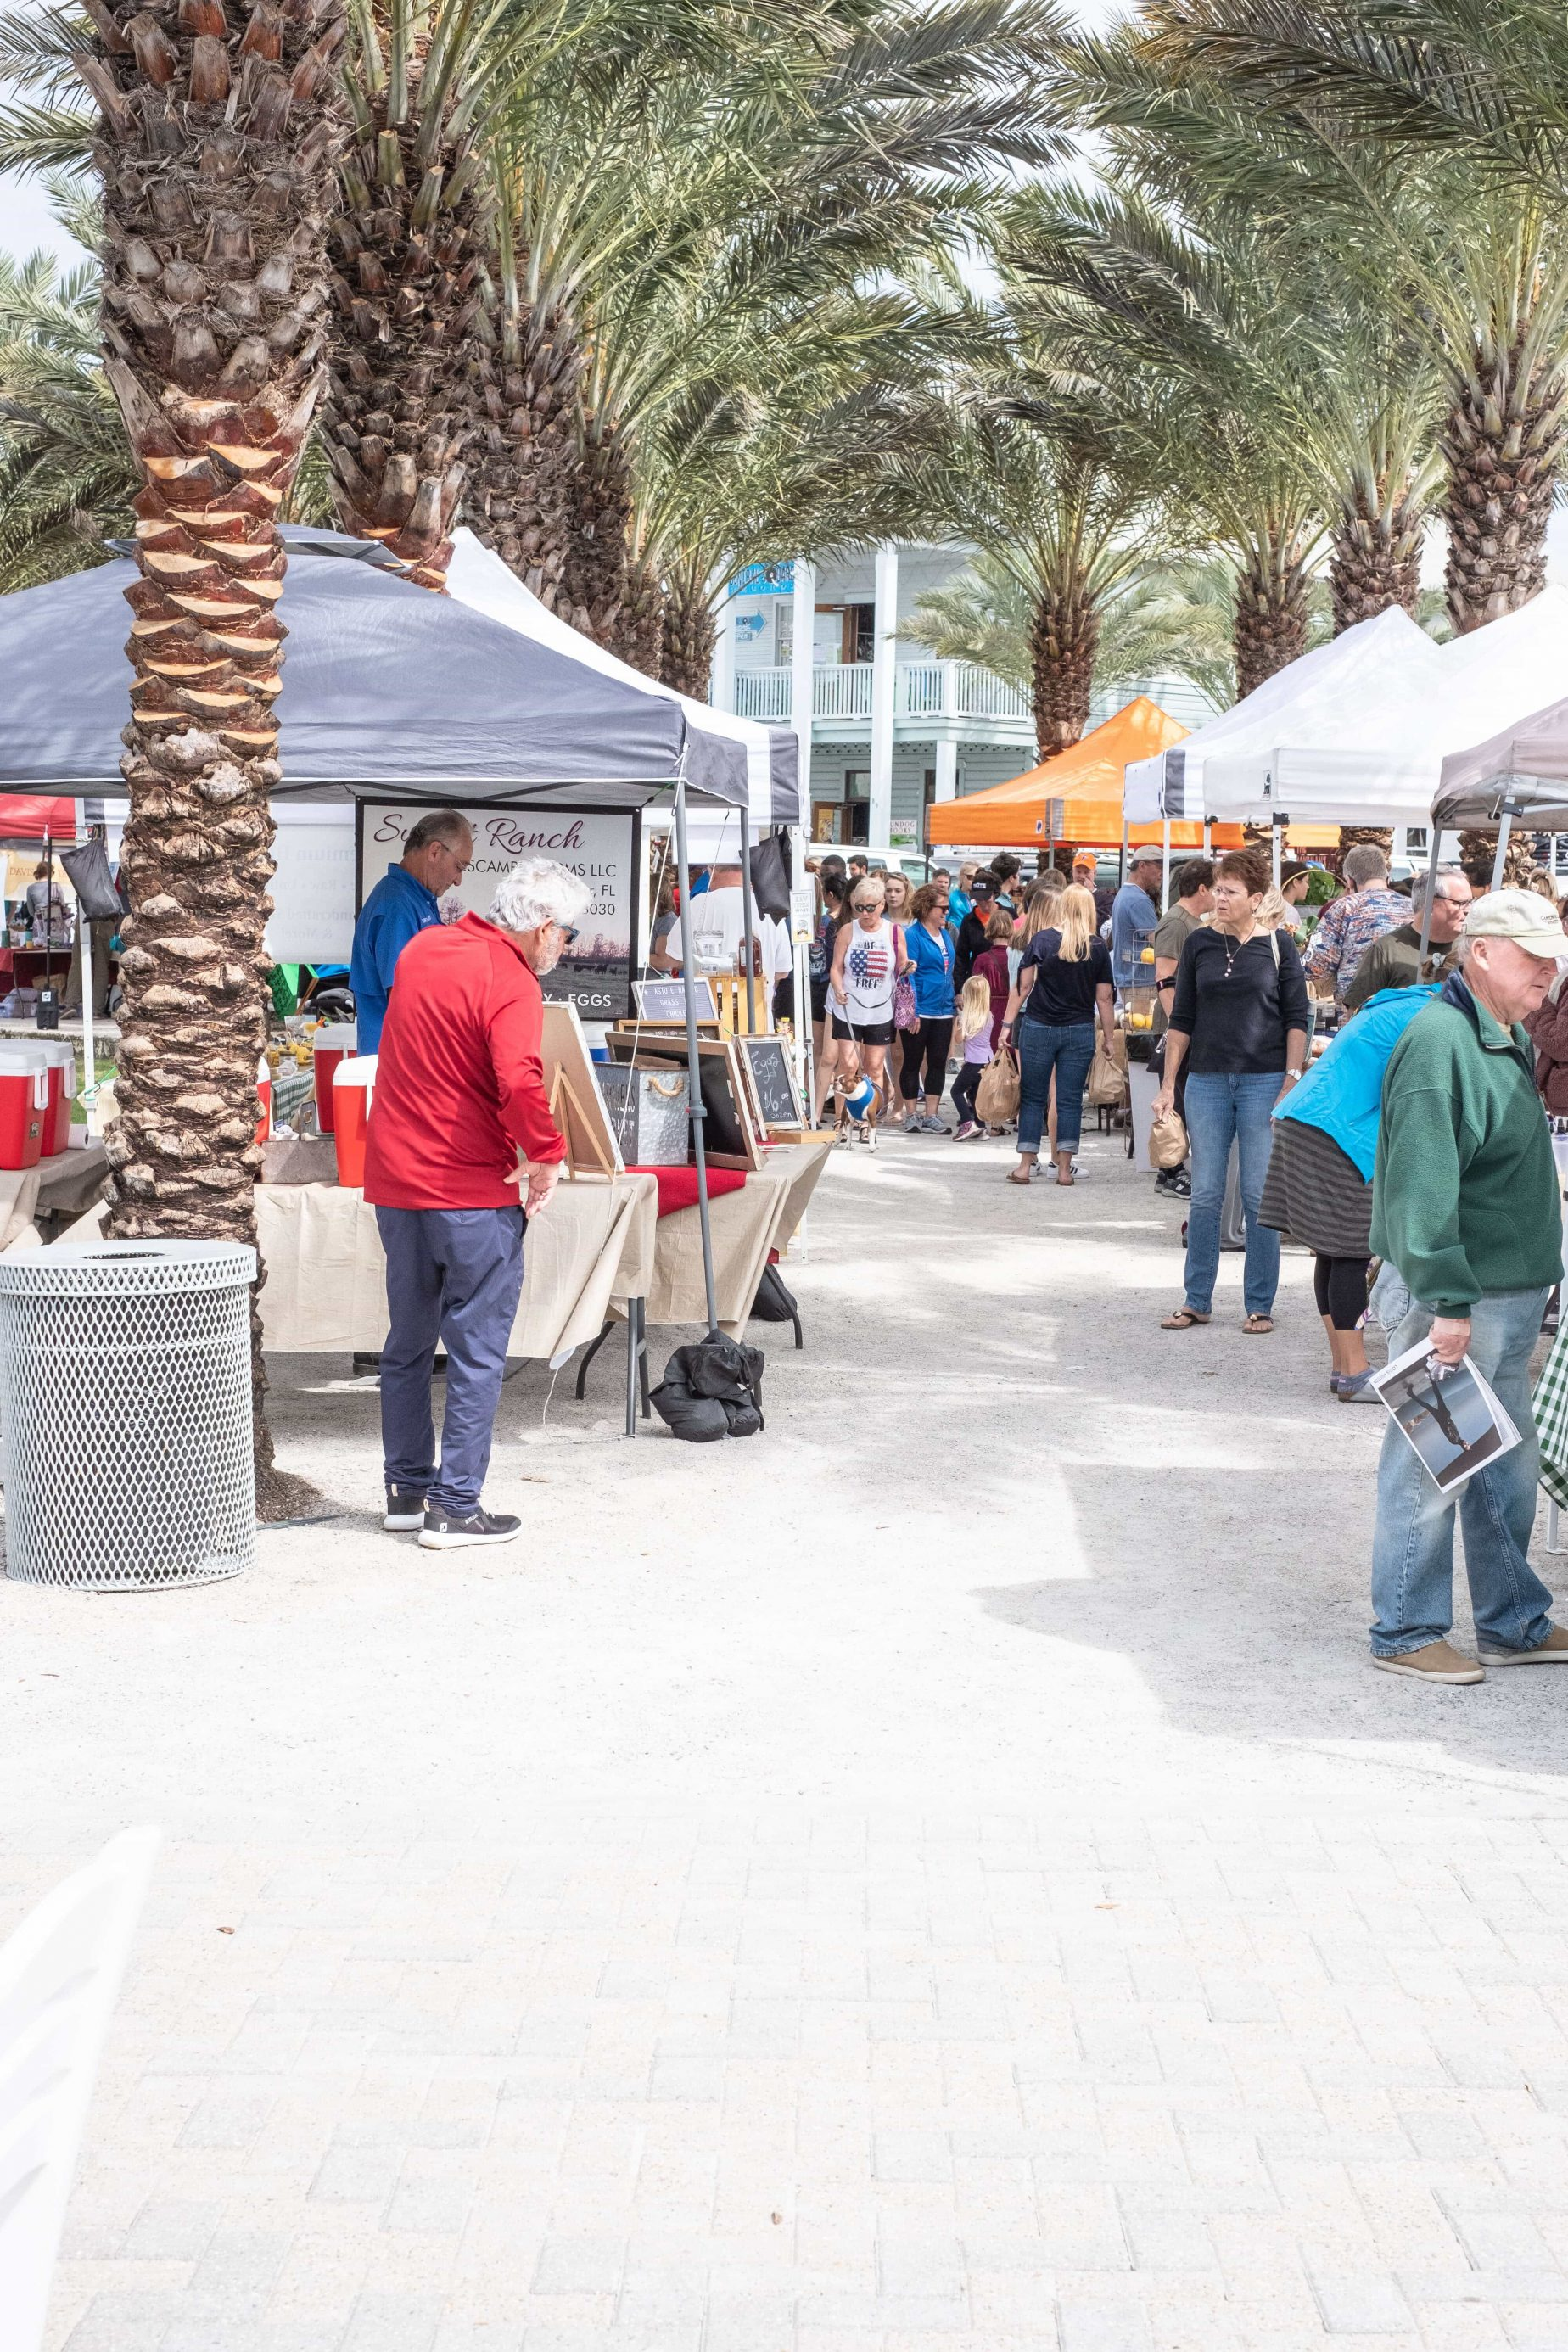 Seaside Farmers Market- What You Need To Know #whatsavvysaid #30a #seasideflorida #farmersmarket #sunnysaturday #visitflorida #farmersmarketfinds